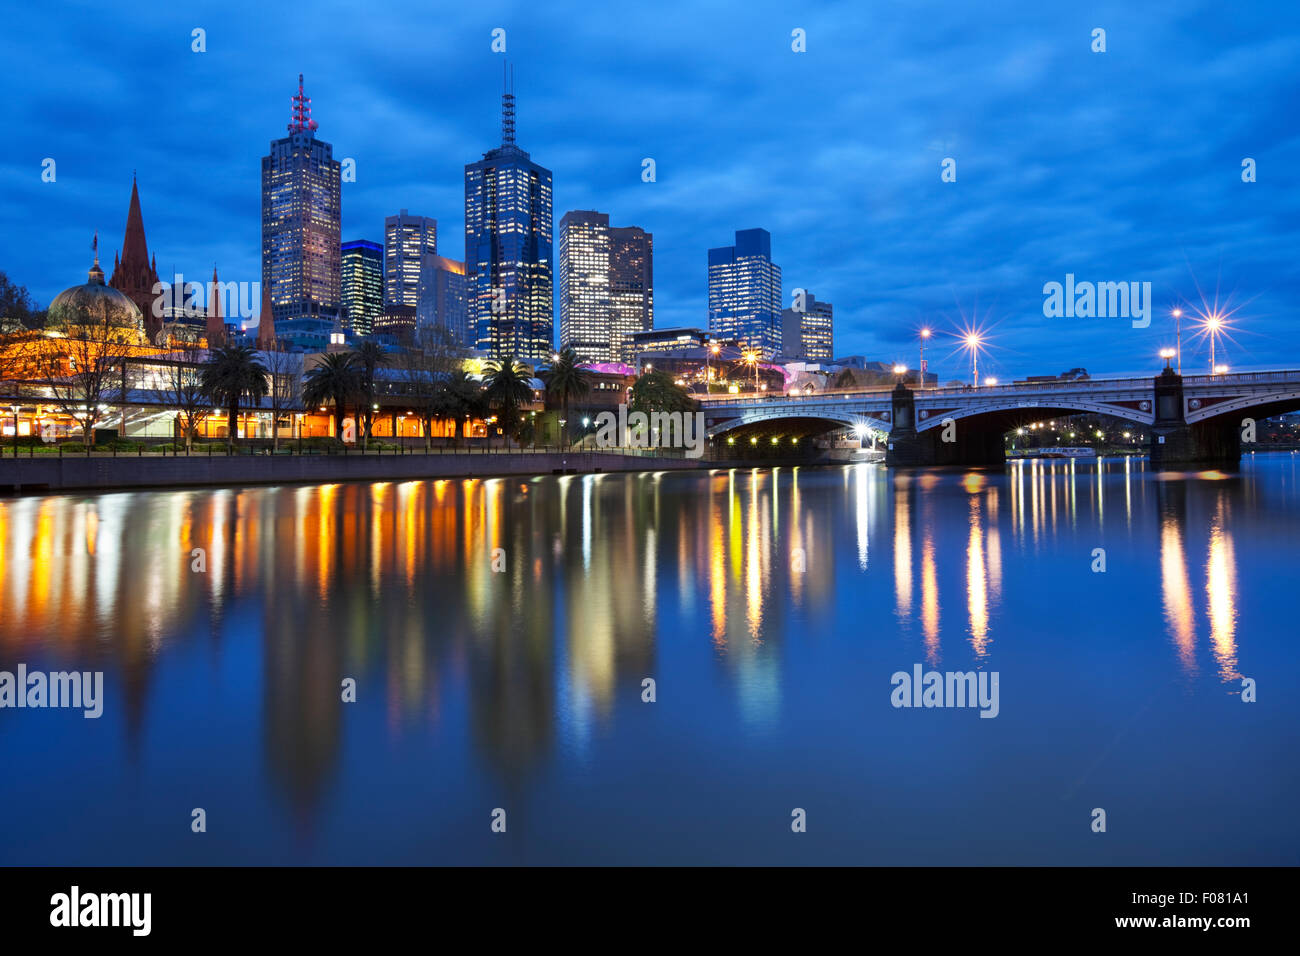 The skyline of Melbourne, Australia with Flinders Street Station and the Princes Bridge from across the Yarra River at night. Stock Photo